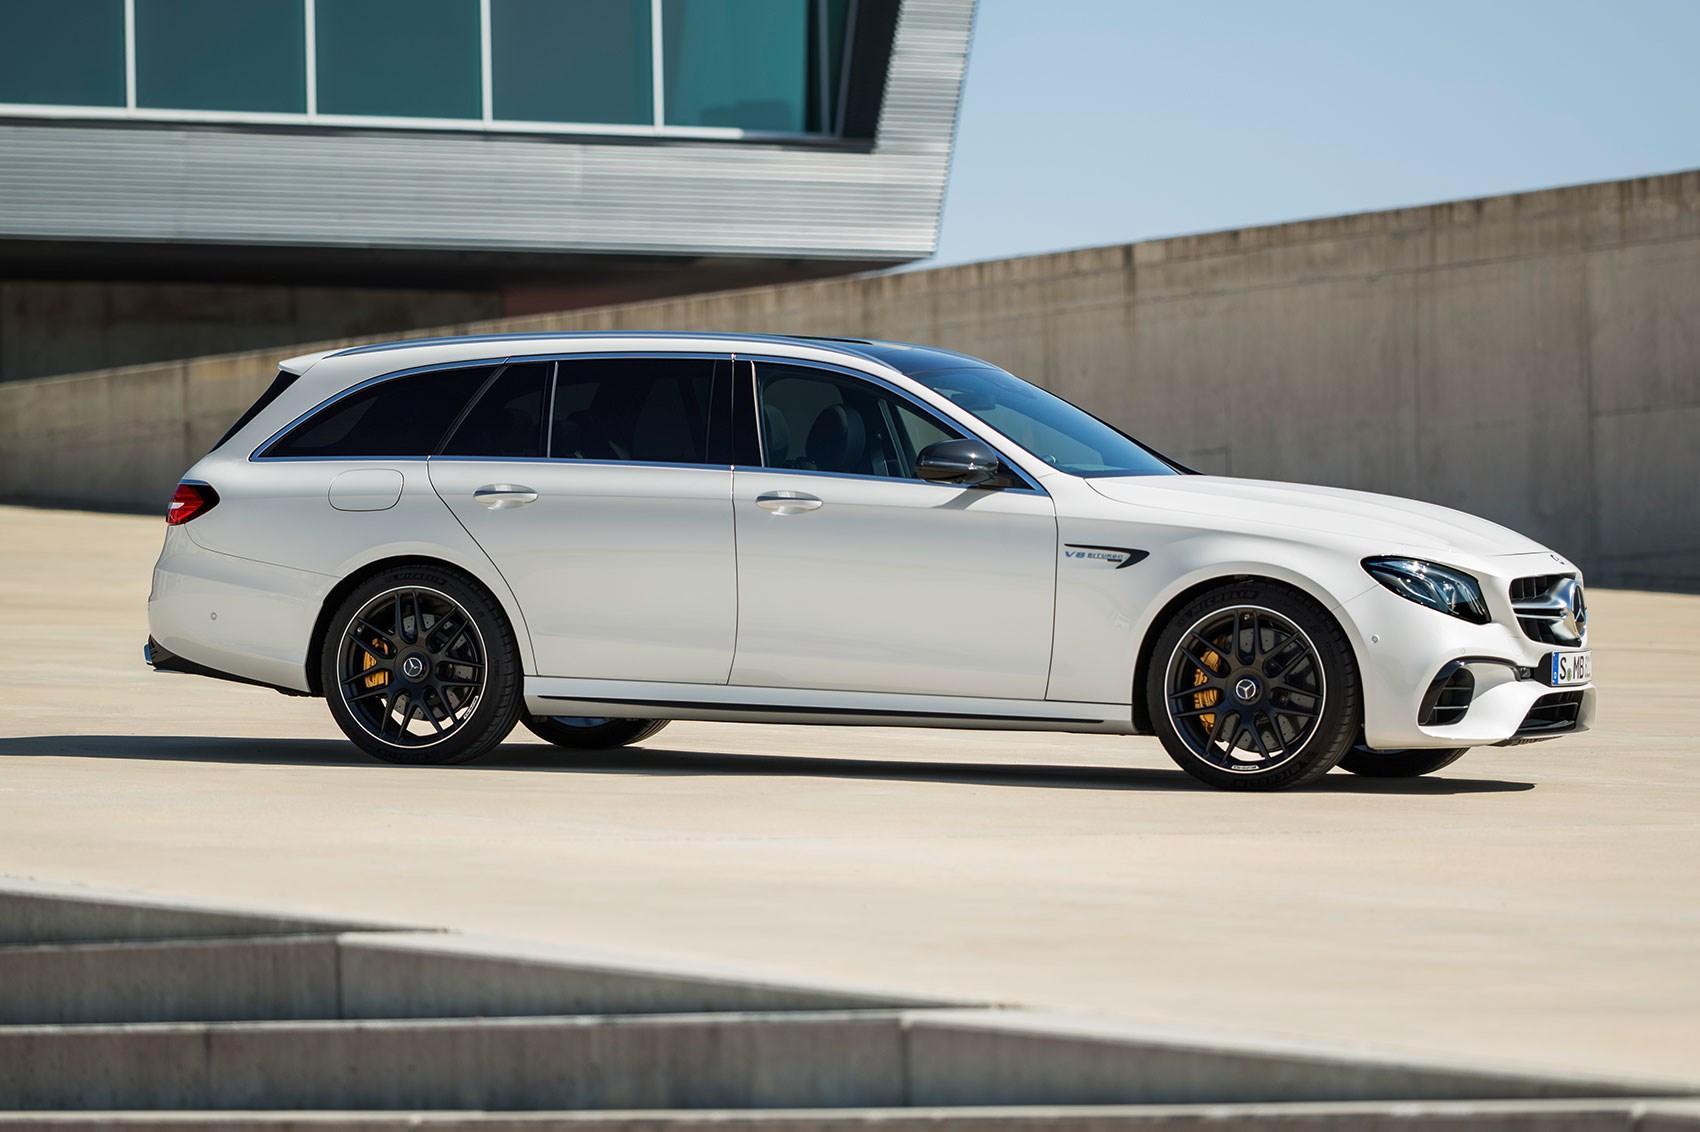 Mercedes amg e63 4matic estate prices revealed for 2017 for Mercedes benz e 63 amg